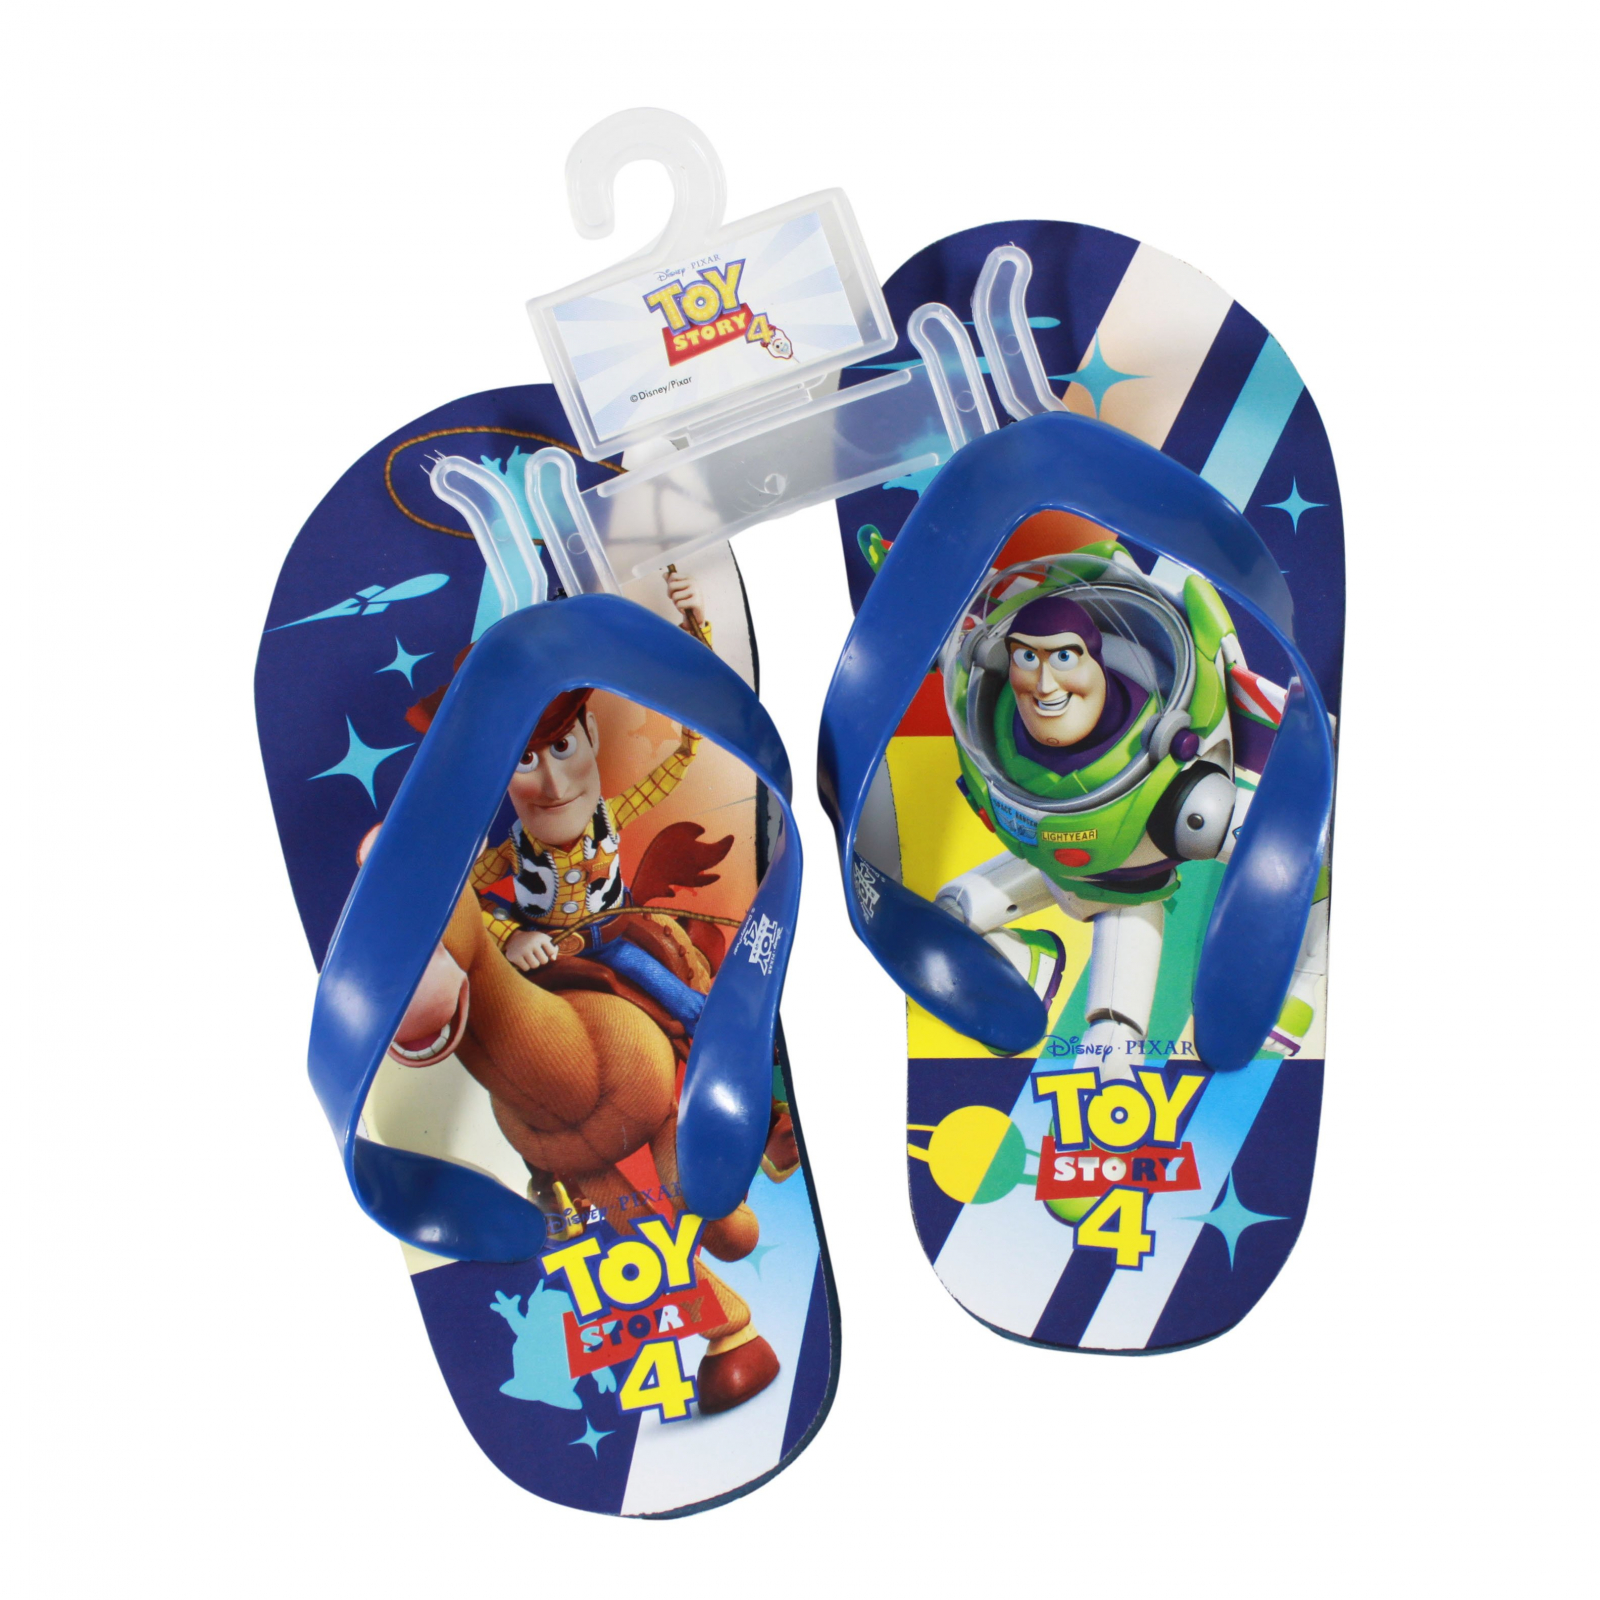 Disney Pixar Toy Story 4 Kids Sandals Blue Strap Medium 13/1